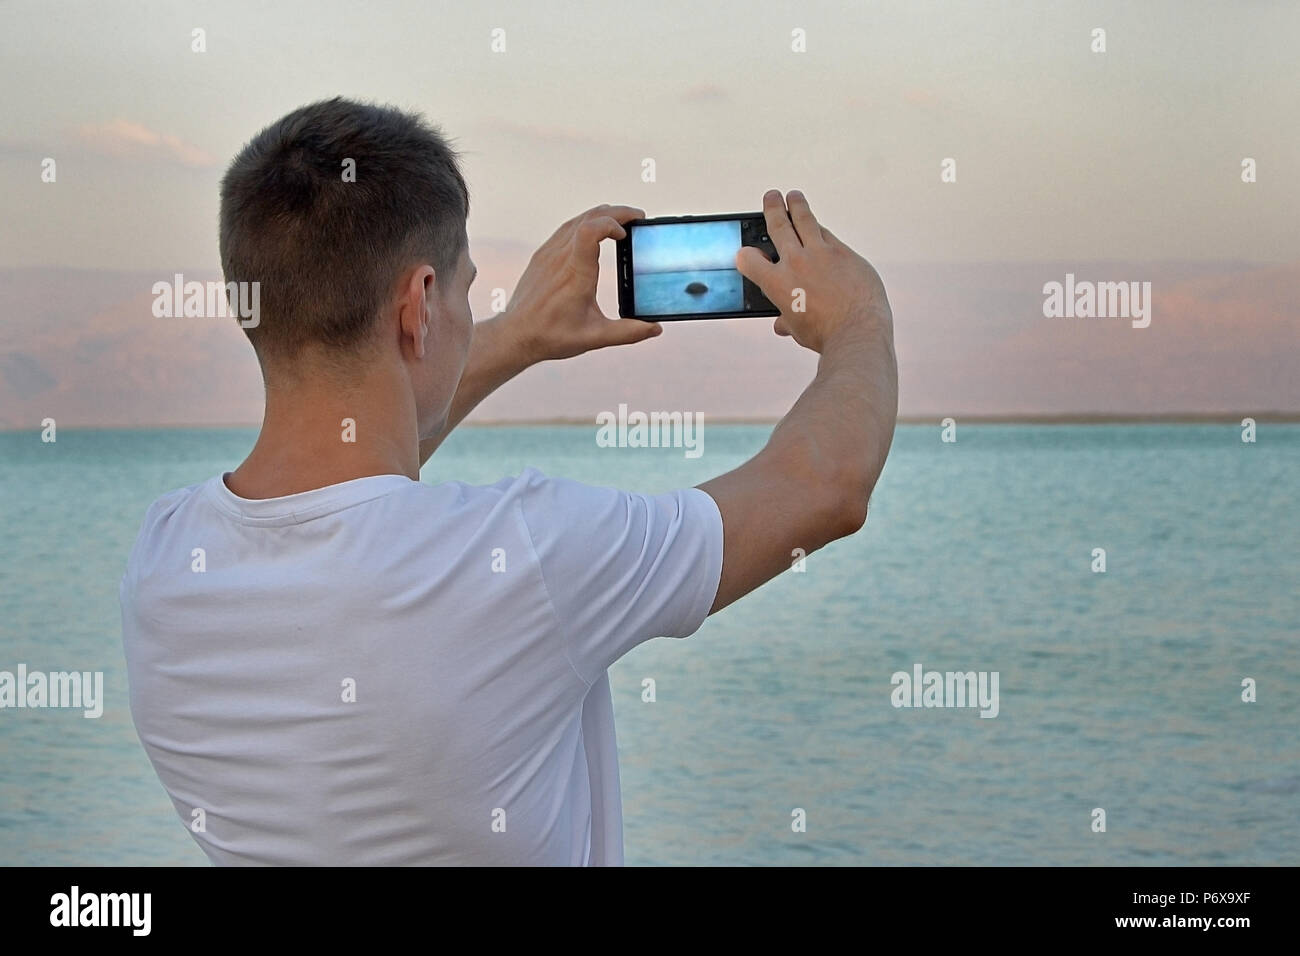 Guy Tourist in a white T-shirt takes pictures using a